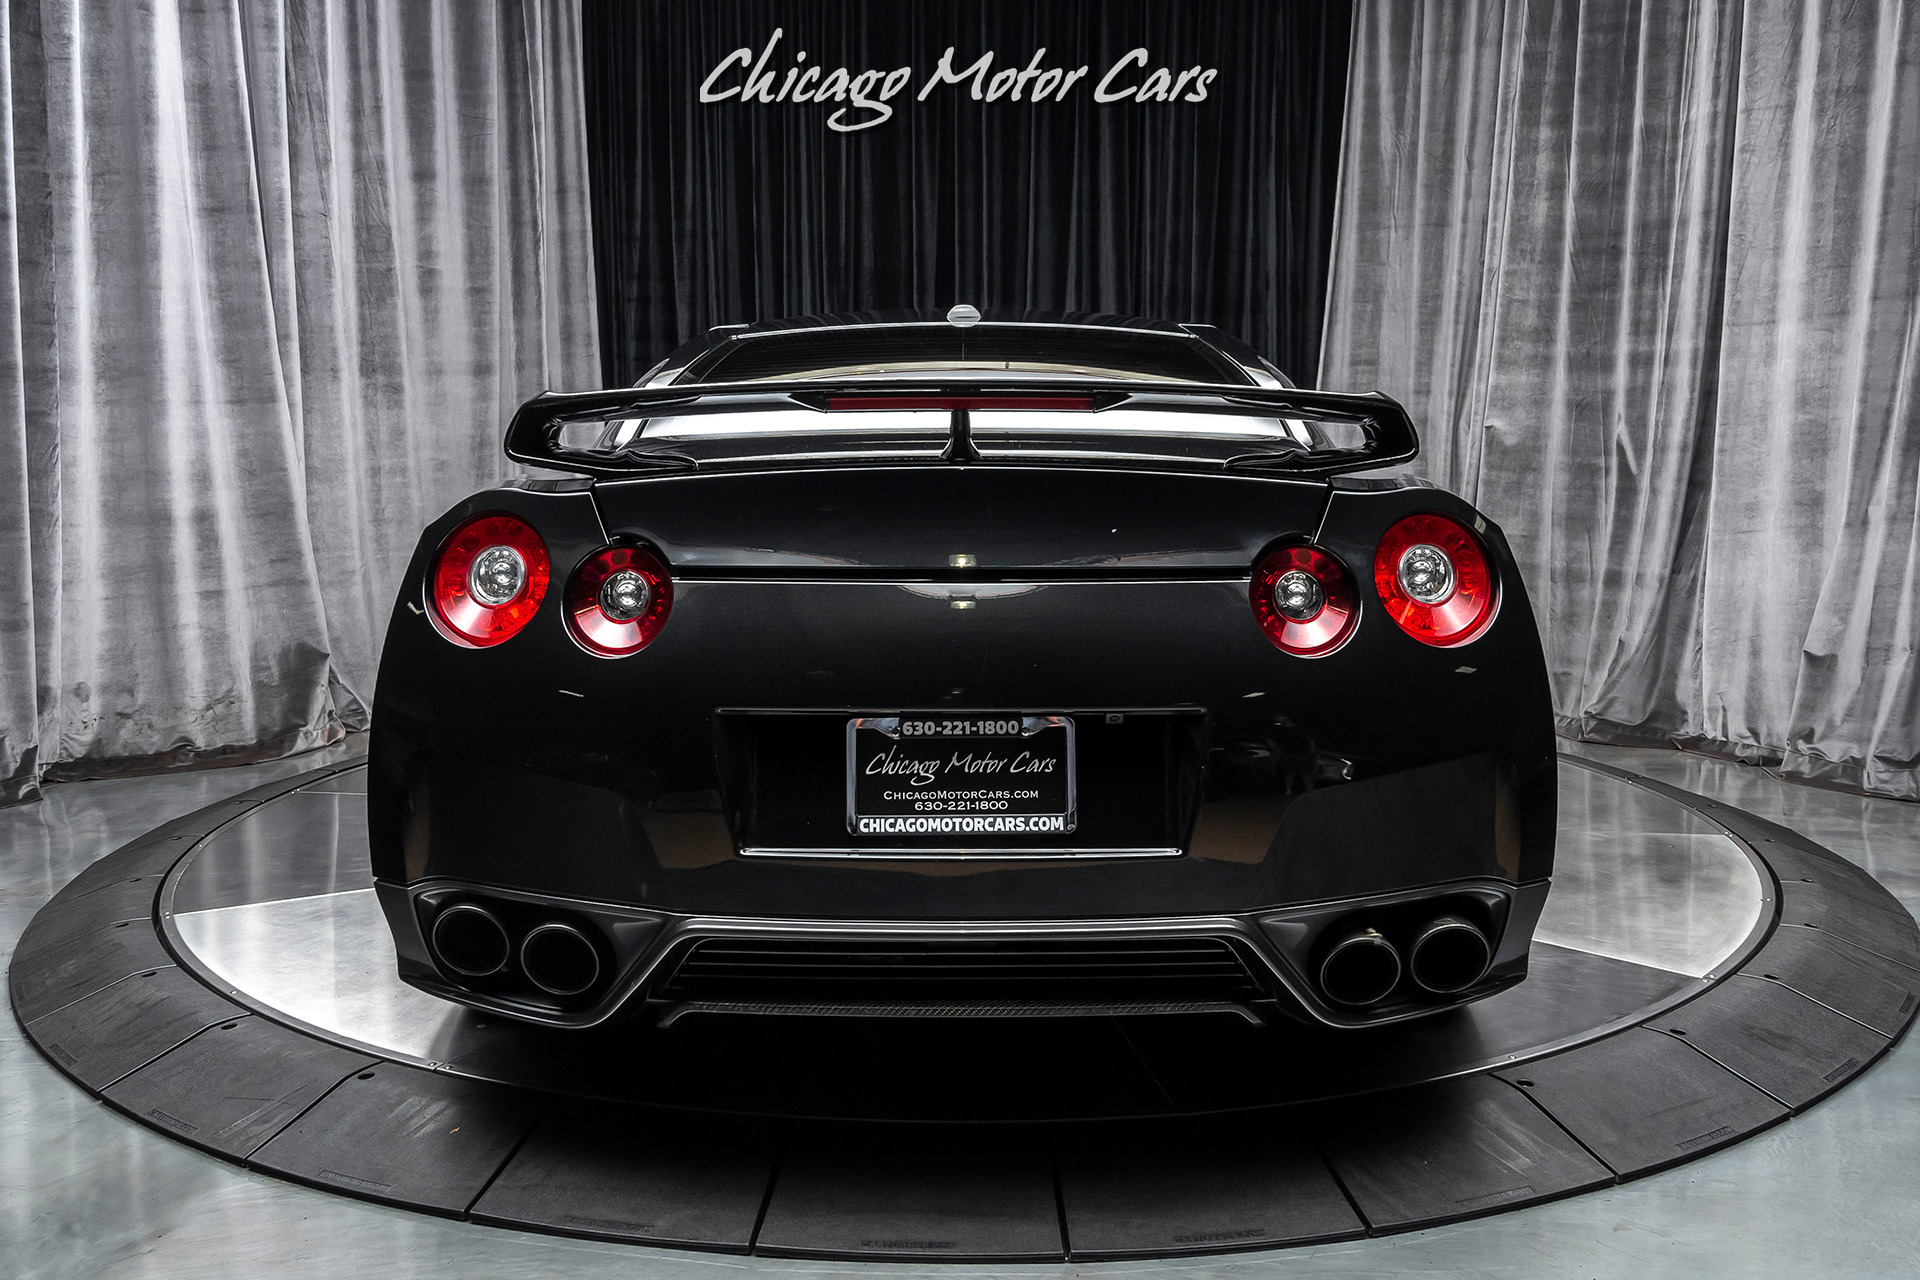 Used-2014-Nissan-GT-R-Black-Edition-800WHP-Built-Engine-Upgraded-Turbos